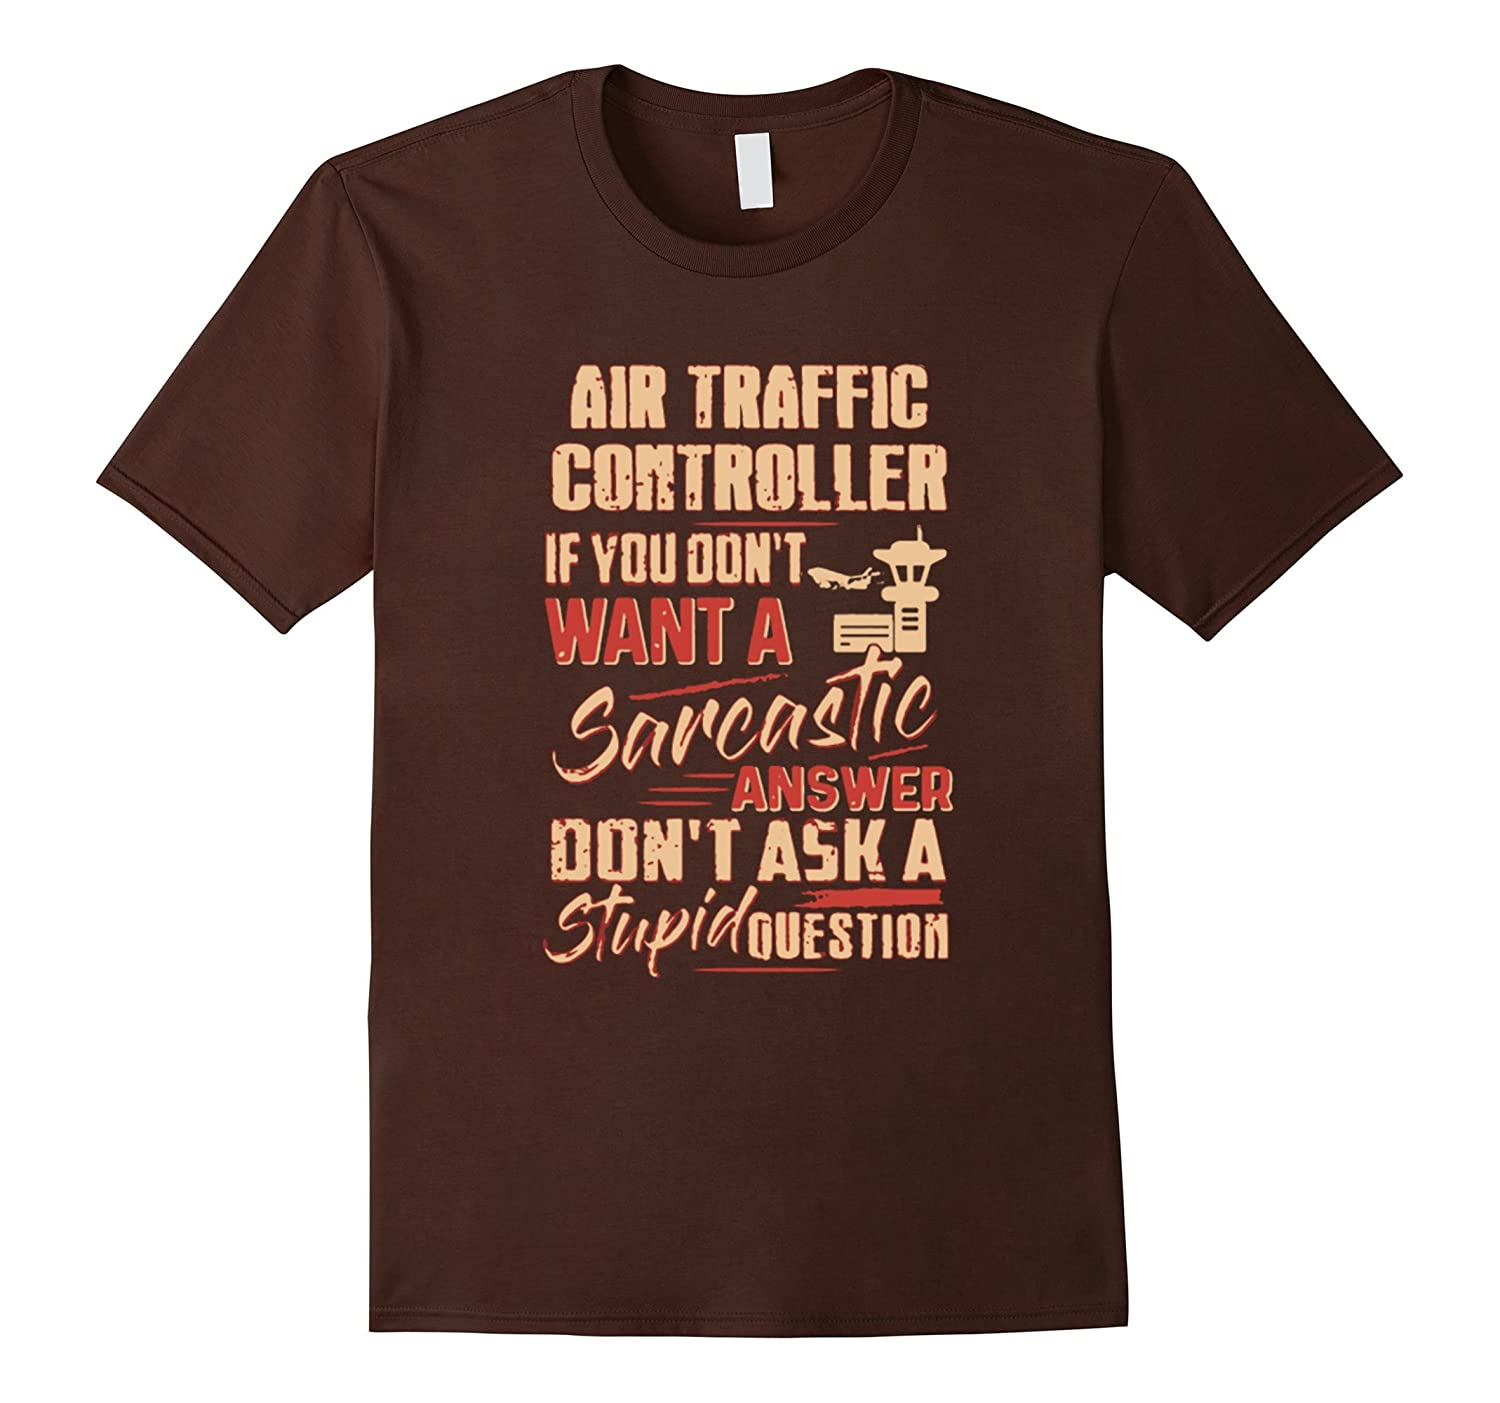 Air Traffic Controller if you dont want a sarcastic TShirt-TJ